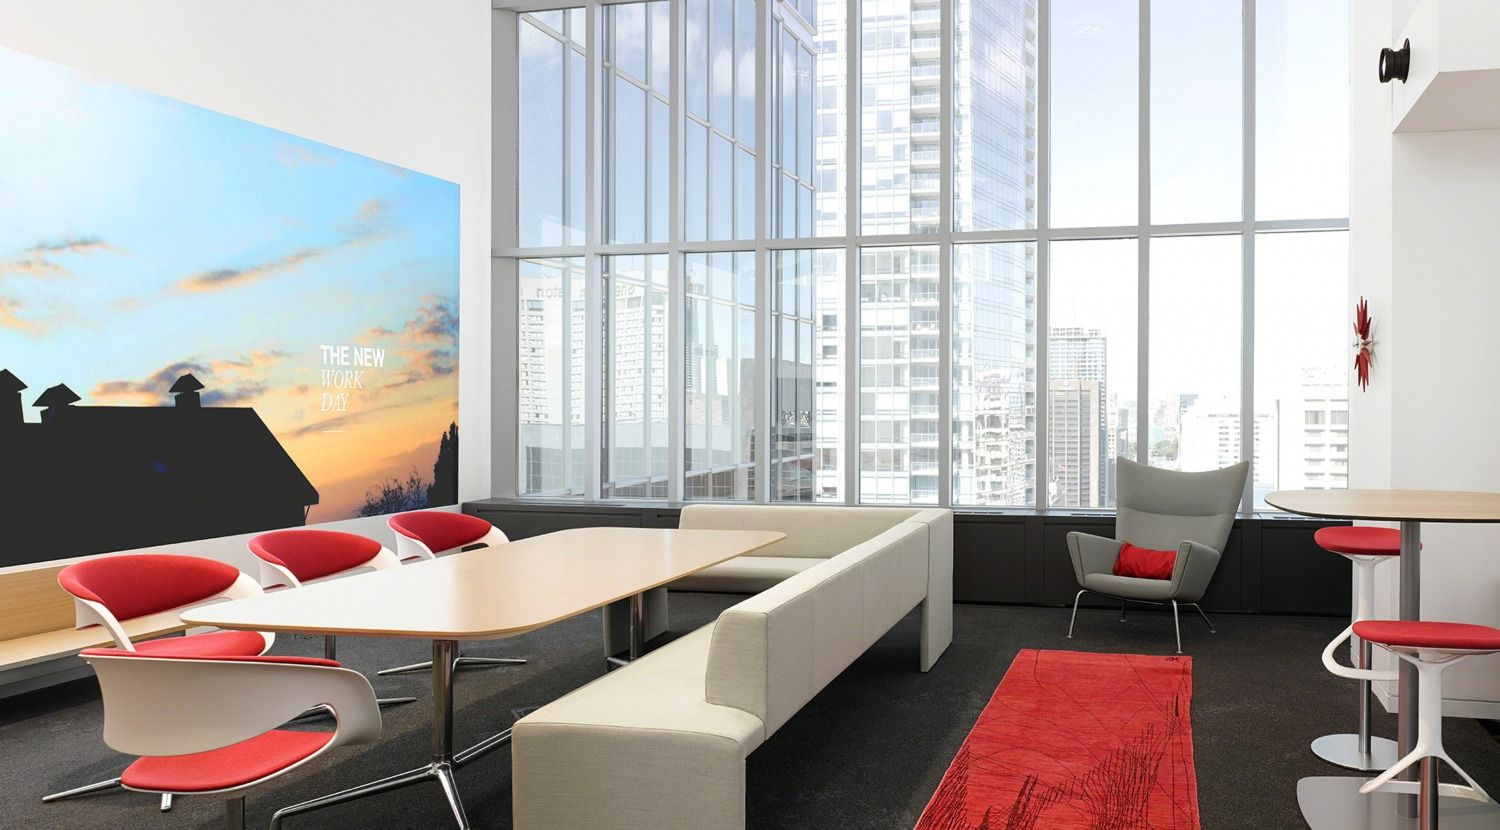 Lounge Es Storr Office Environments New And Used Furniture For The Raleigh Greensboro Nc Market Including Healthcare Education